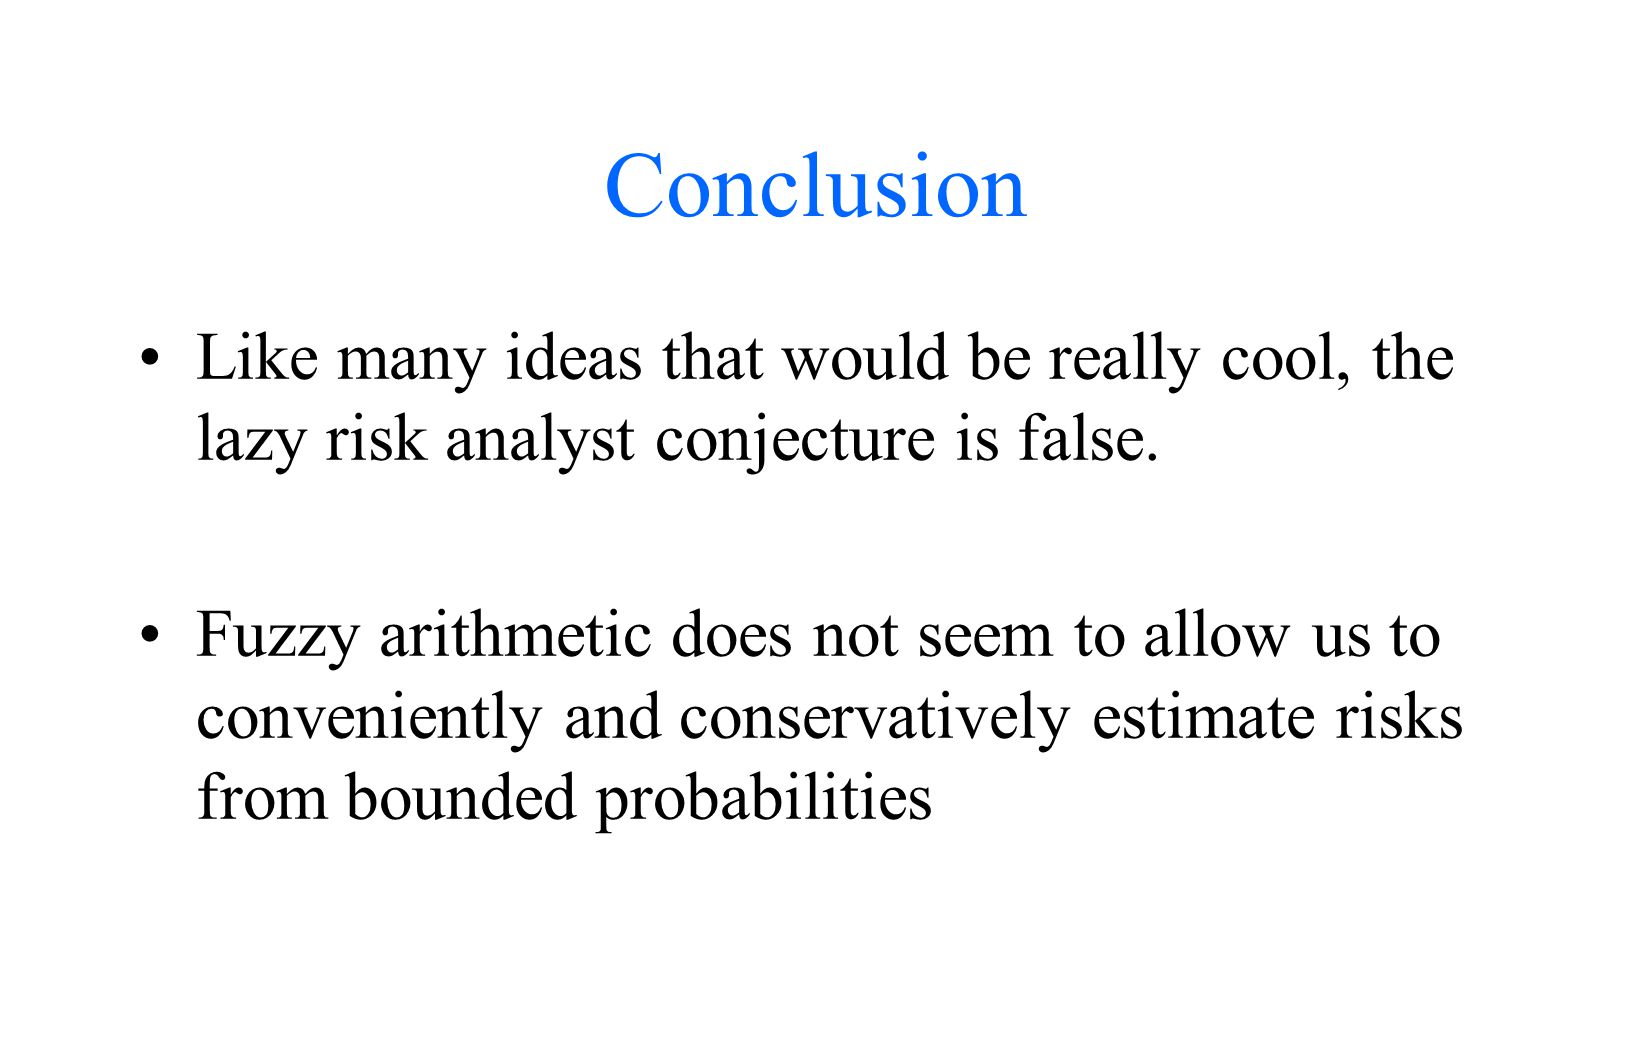 Conclusion Like many ideas that would be really cool, the lazy risk analyst conjecture is false.